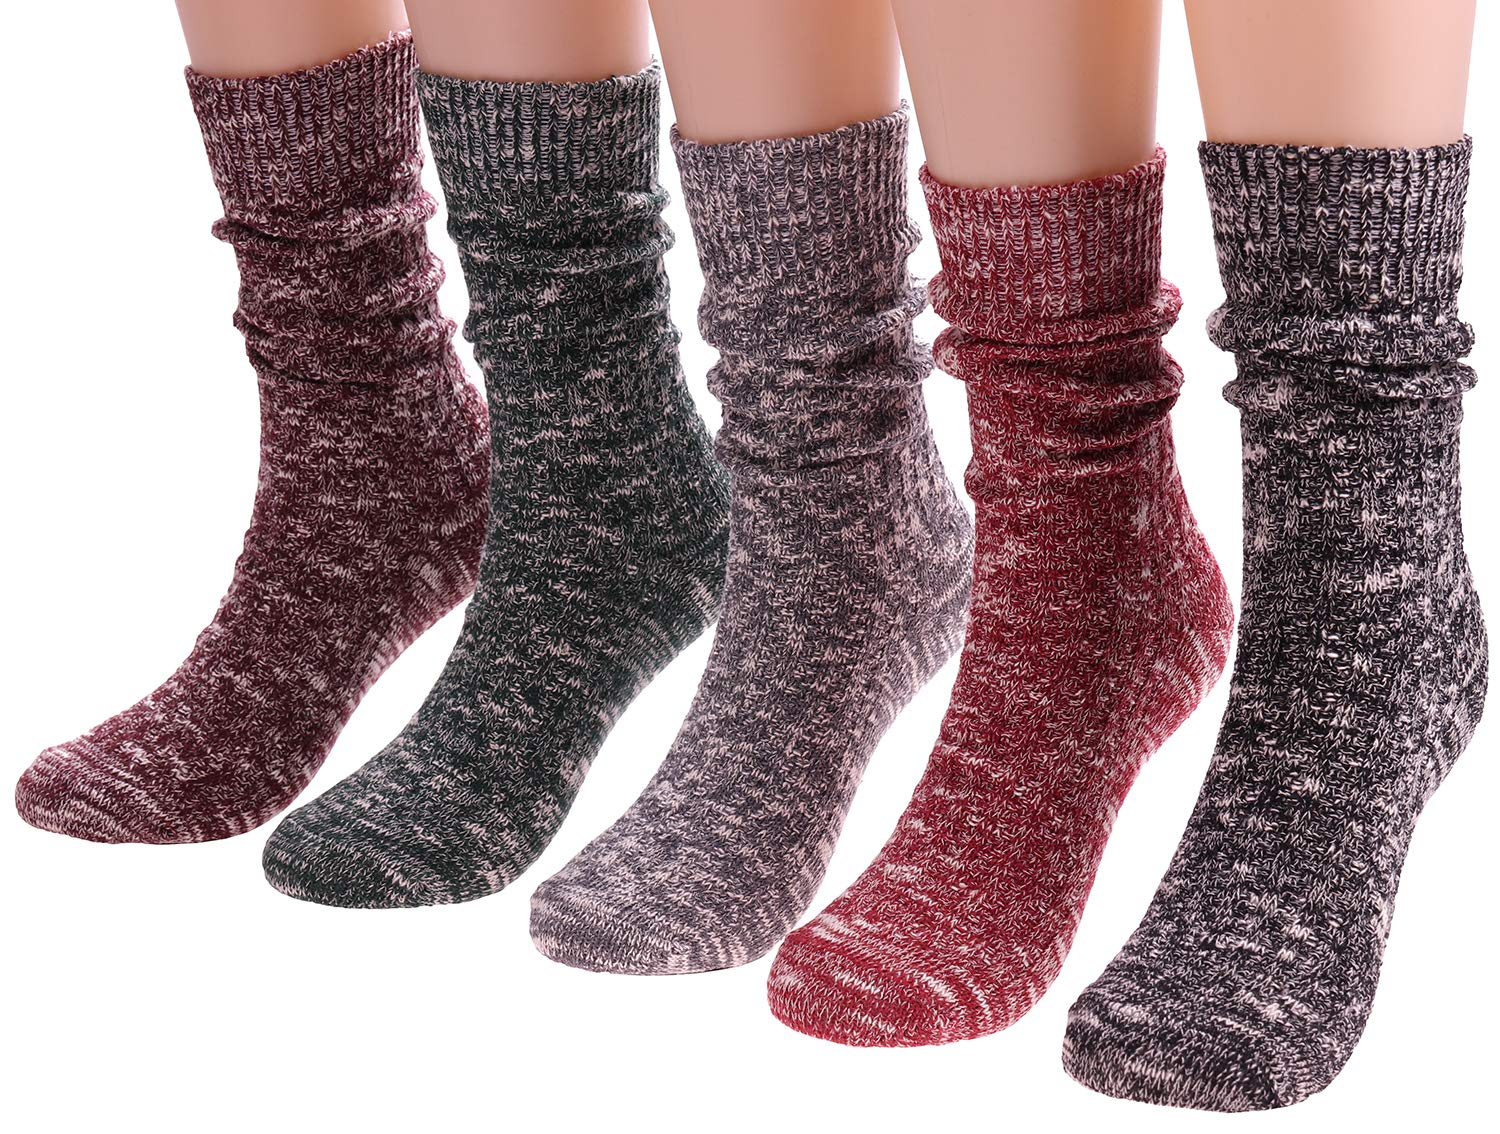 ANCHOVY 5 Pack Cotton Crew Socks Women Vintage Long Boot Socks Warm Cable Knit Socks 5-9 G-21